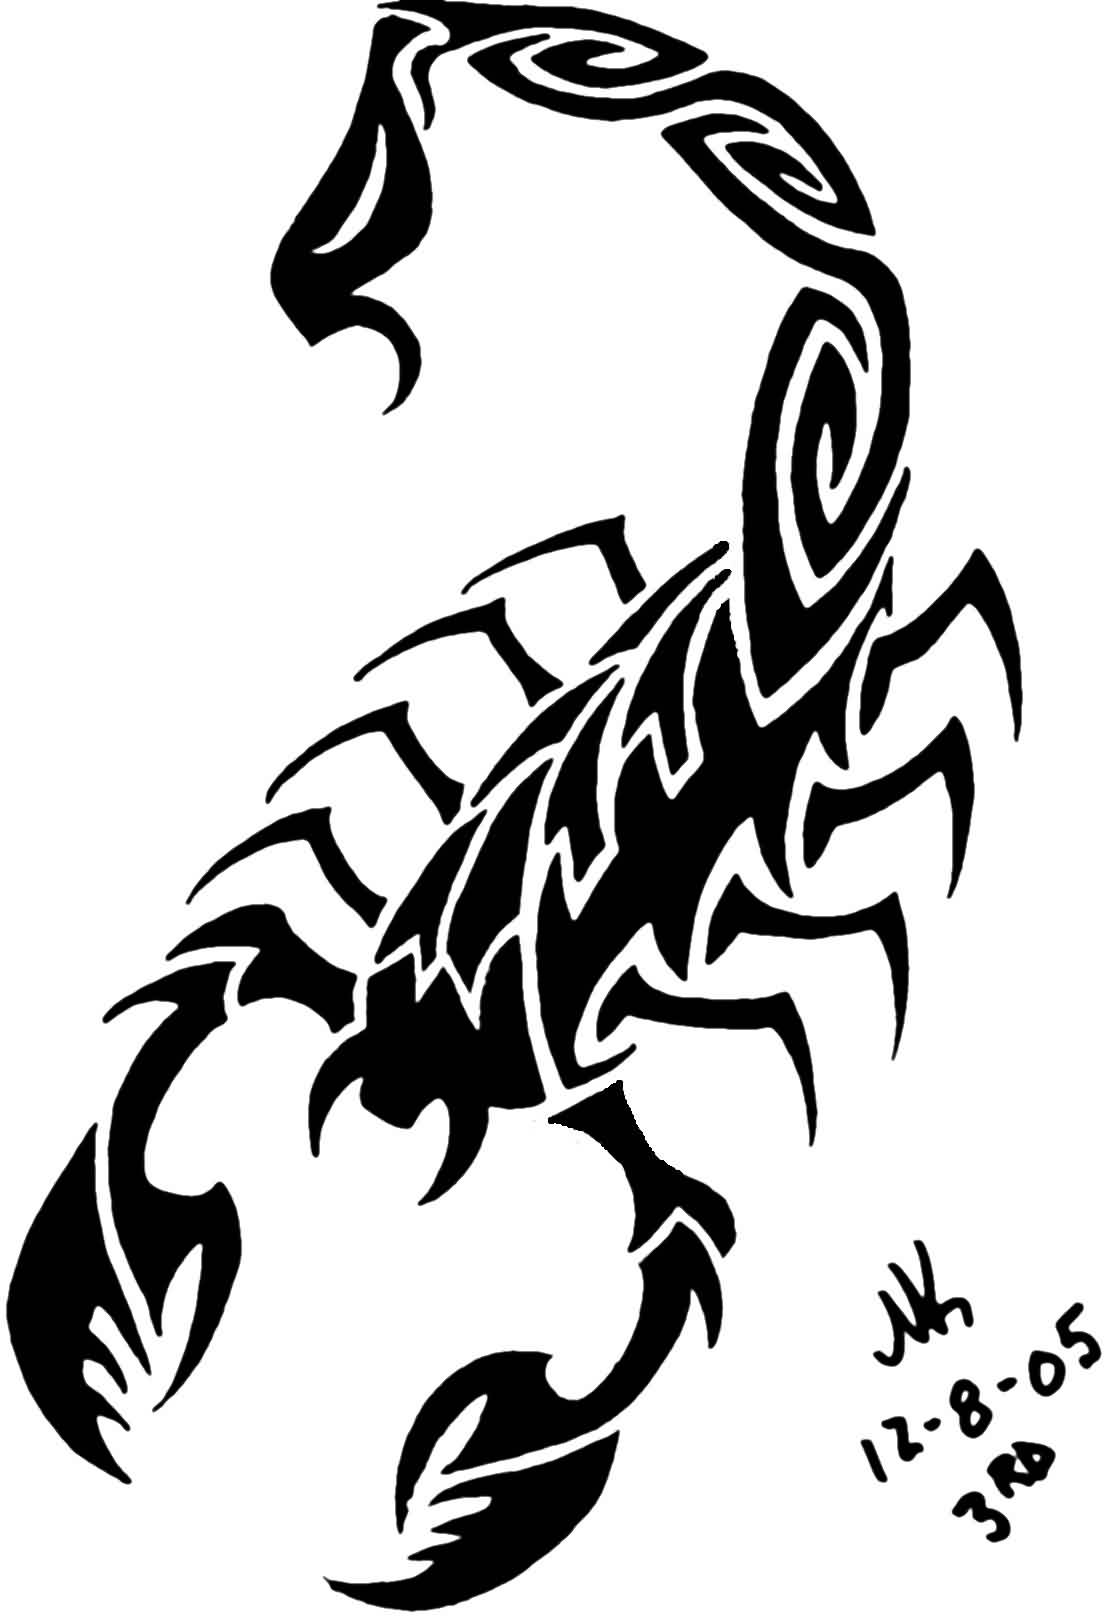 46black scorpio tattoo idea